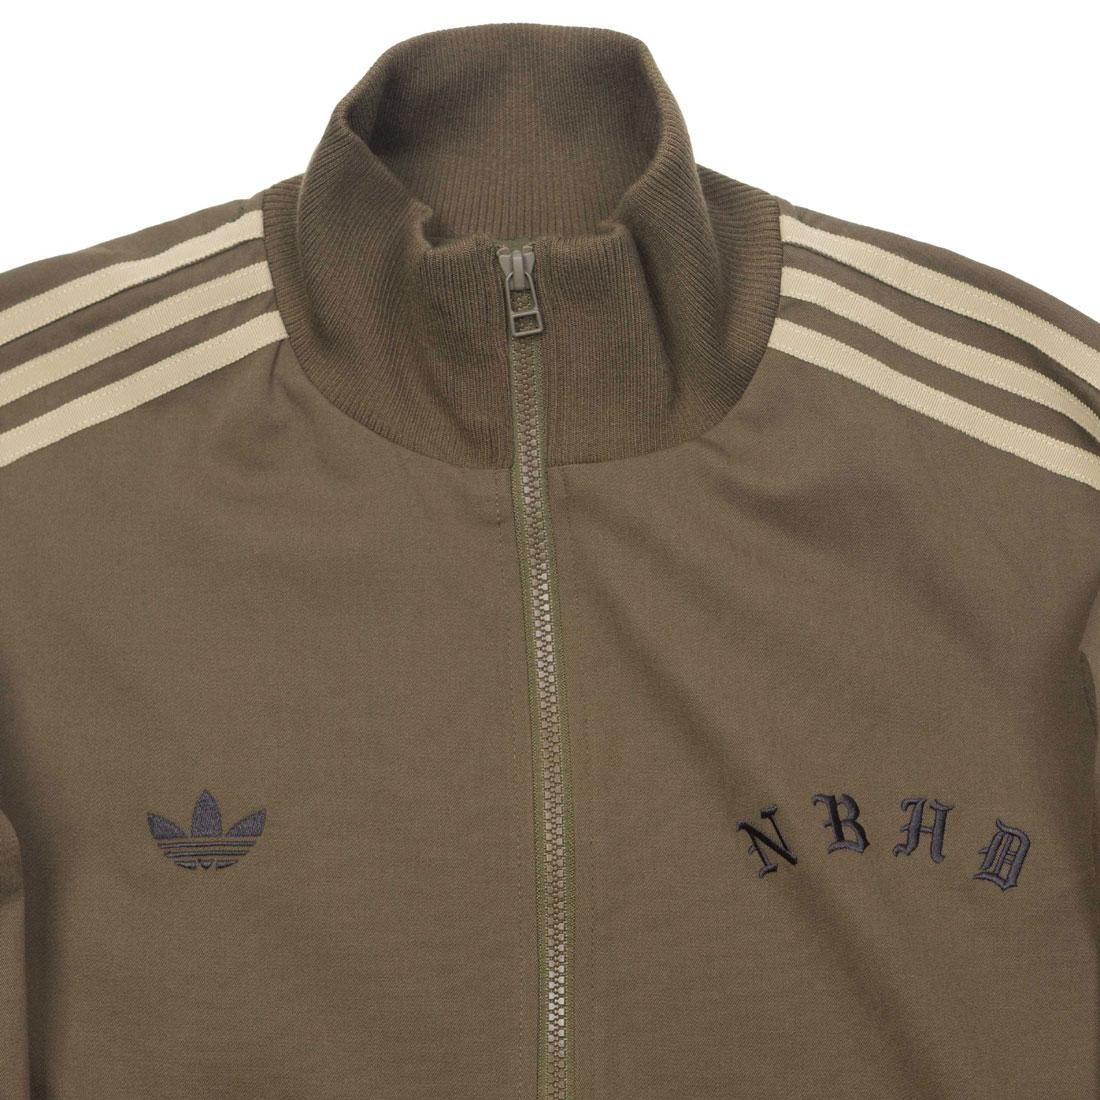 66effd3a5fbd Adidas x Neighborhood Men NH Track Top Jacket (olive   trace olive)